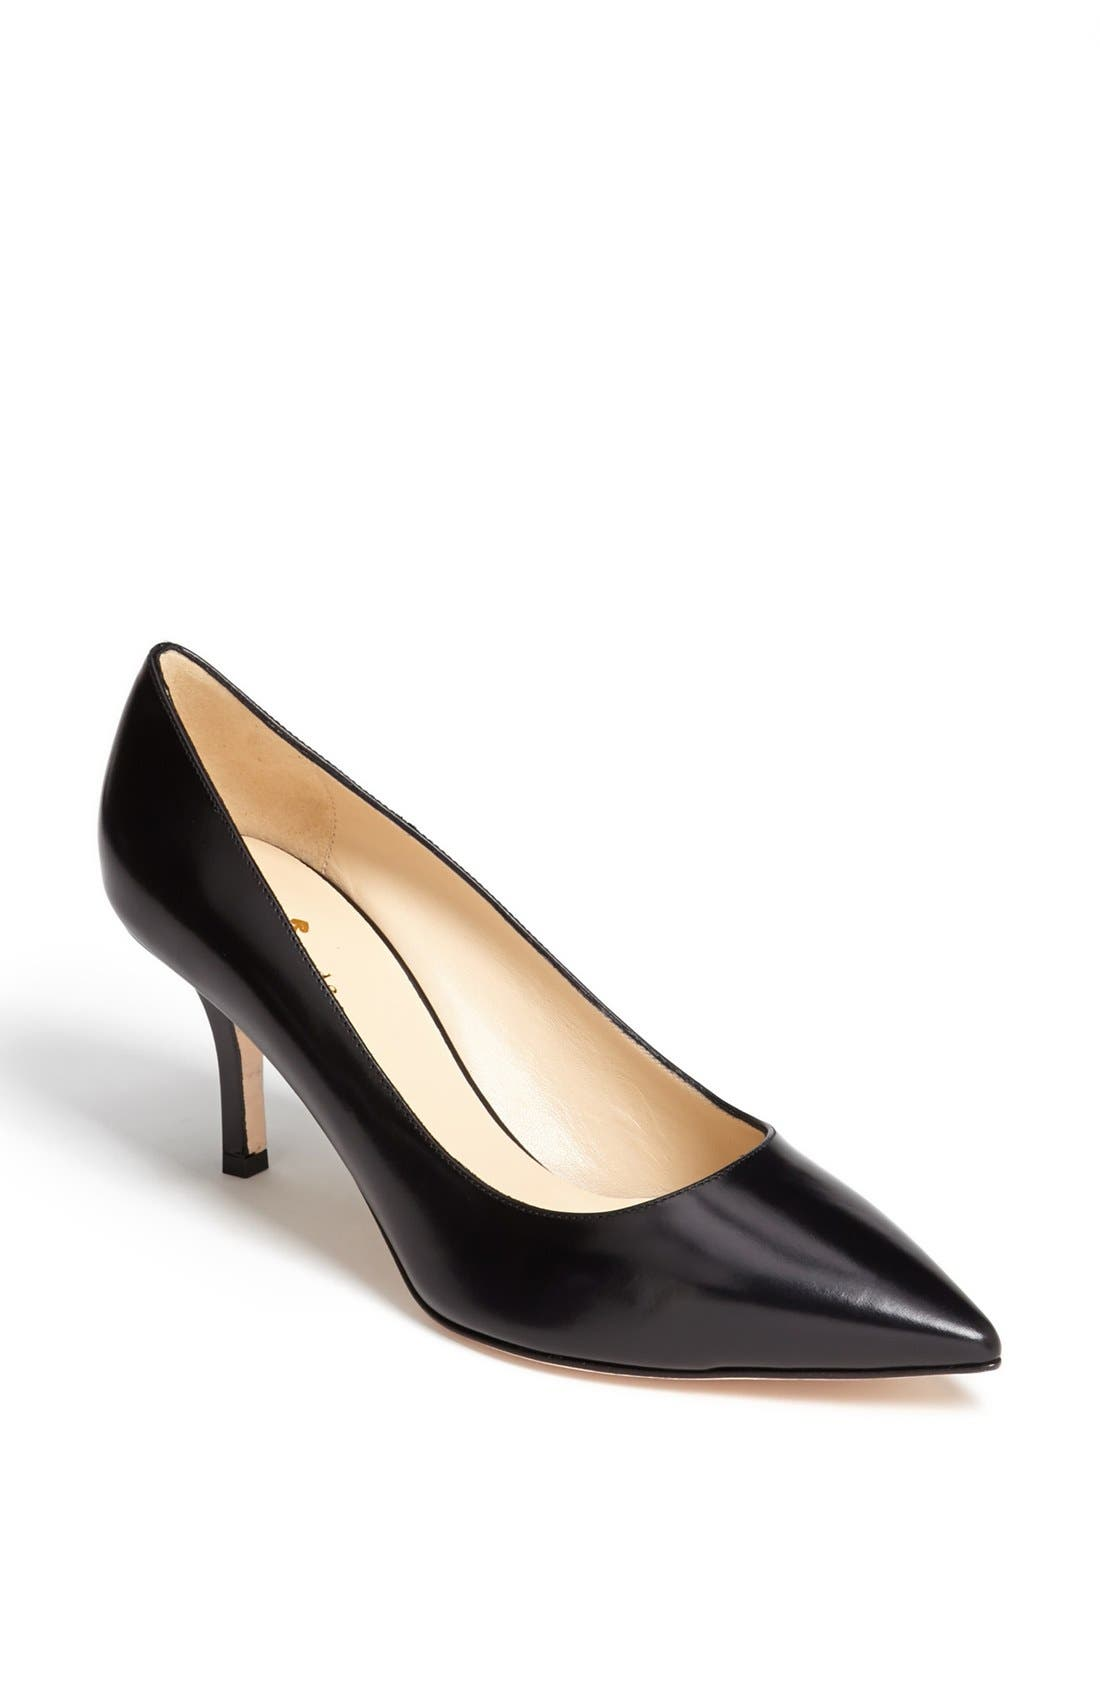 Main Image - kate spade new york 'jayden' pump